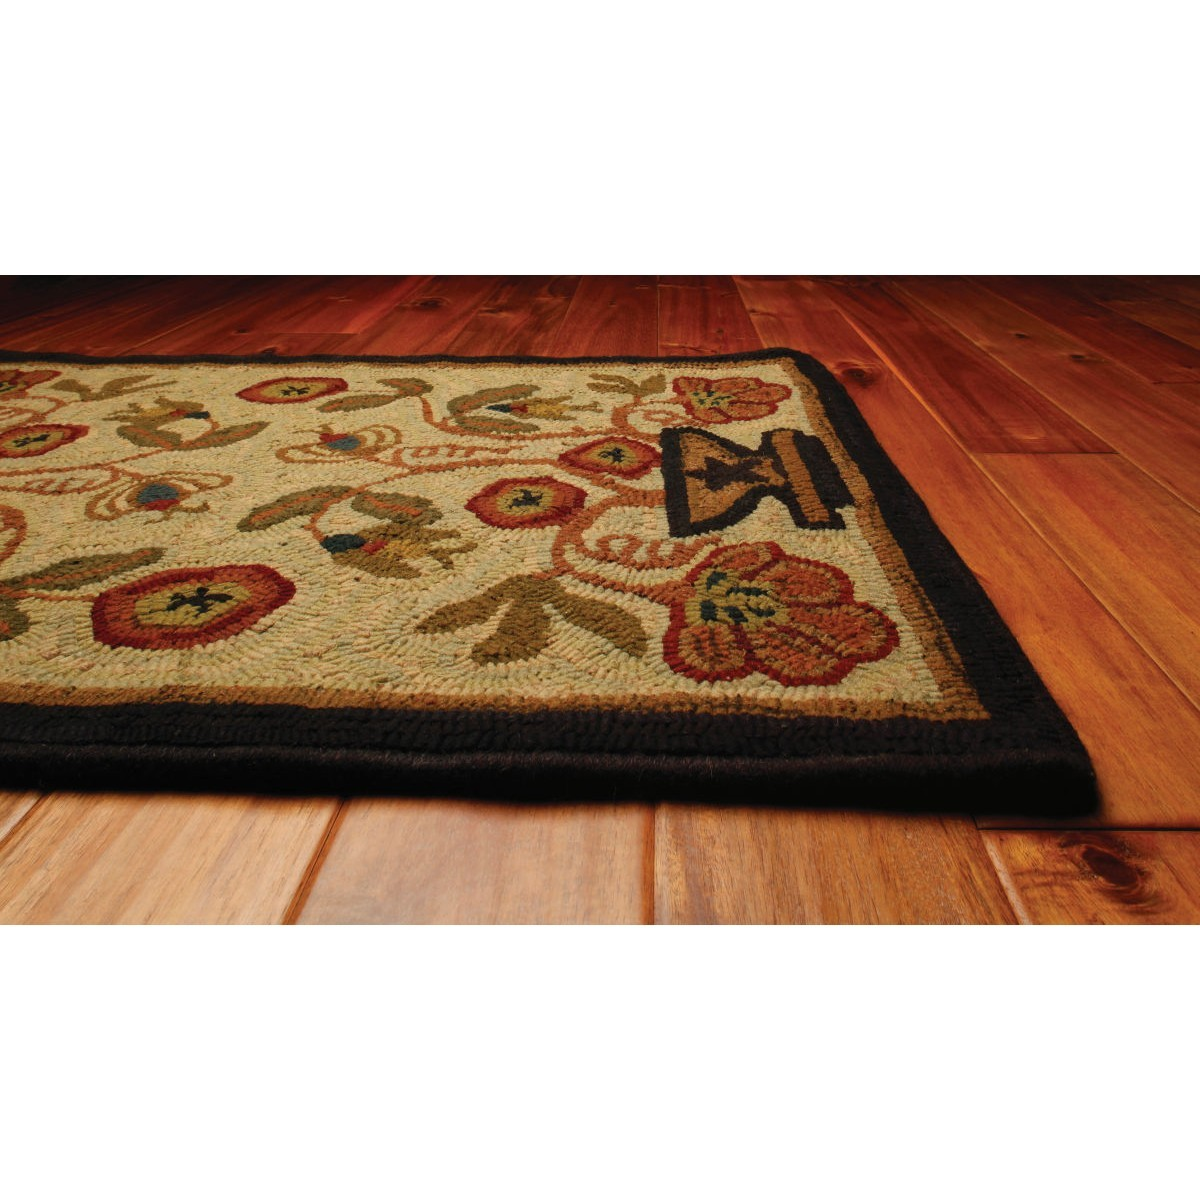 Home Rugs Hooked Wool Potted Flower Pattern